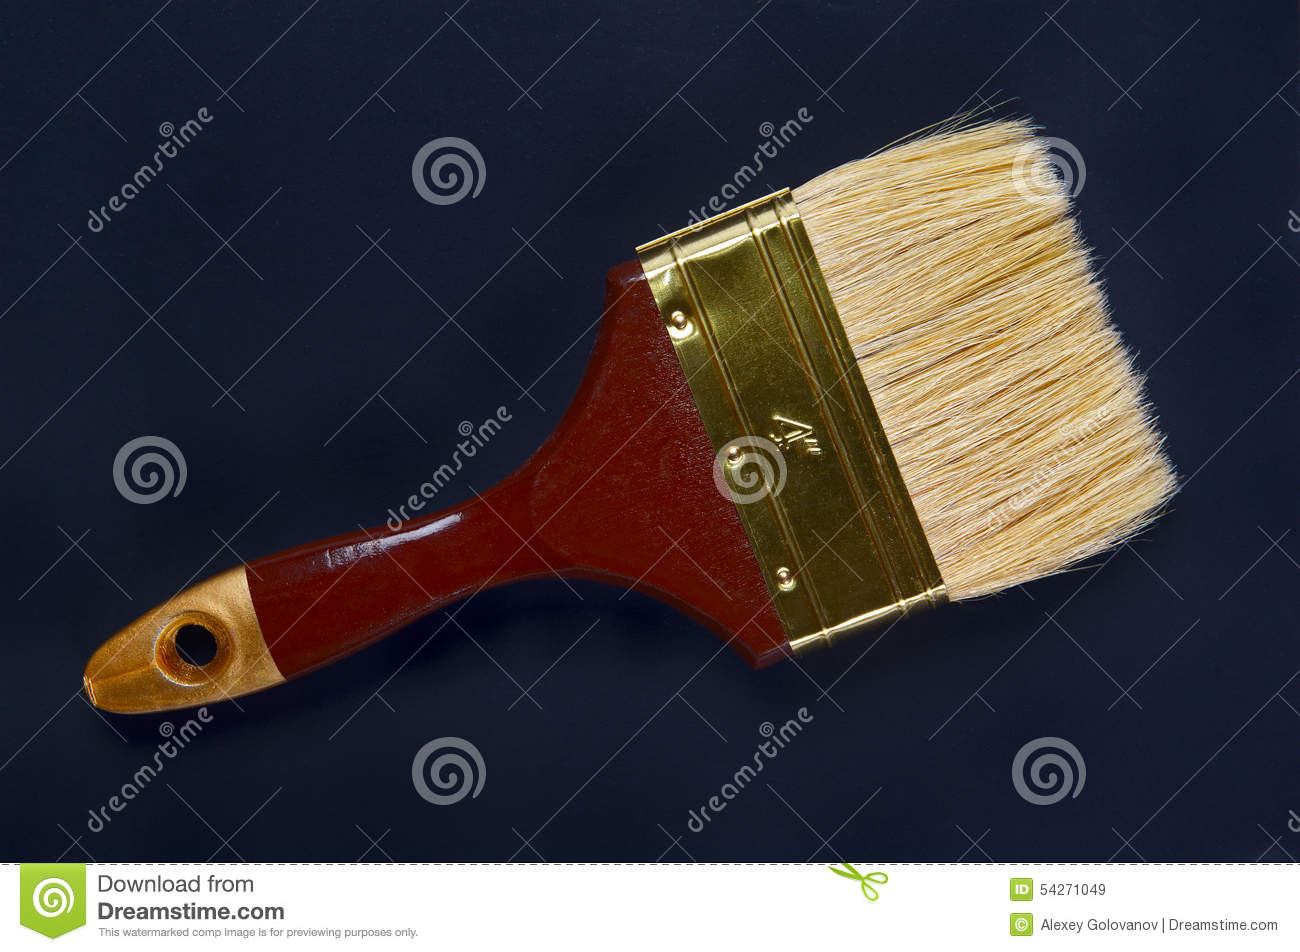 Paintbrush on a dark background